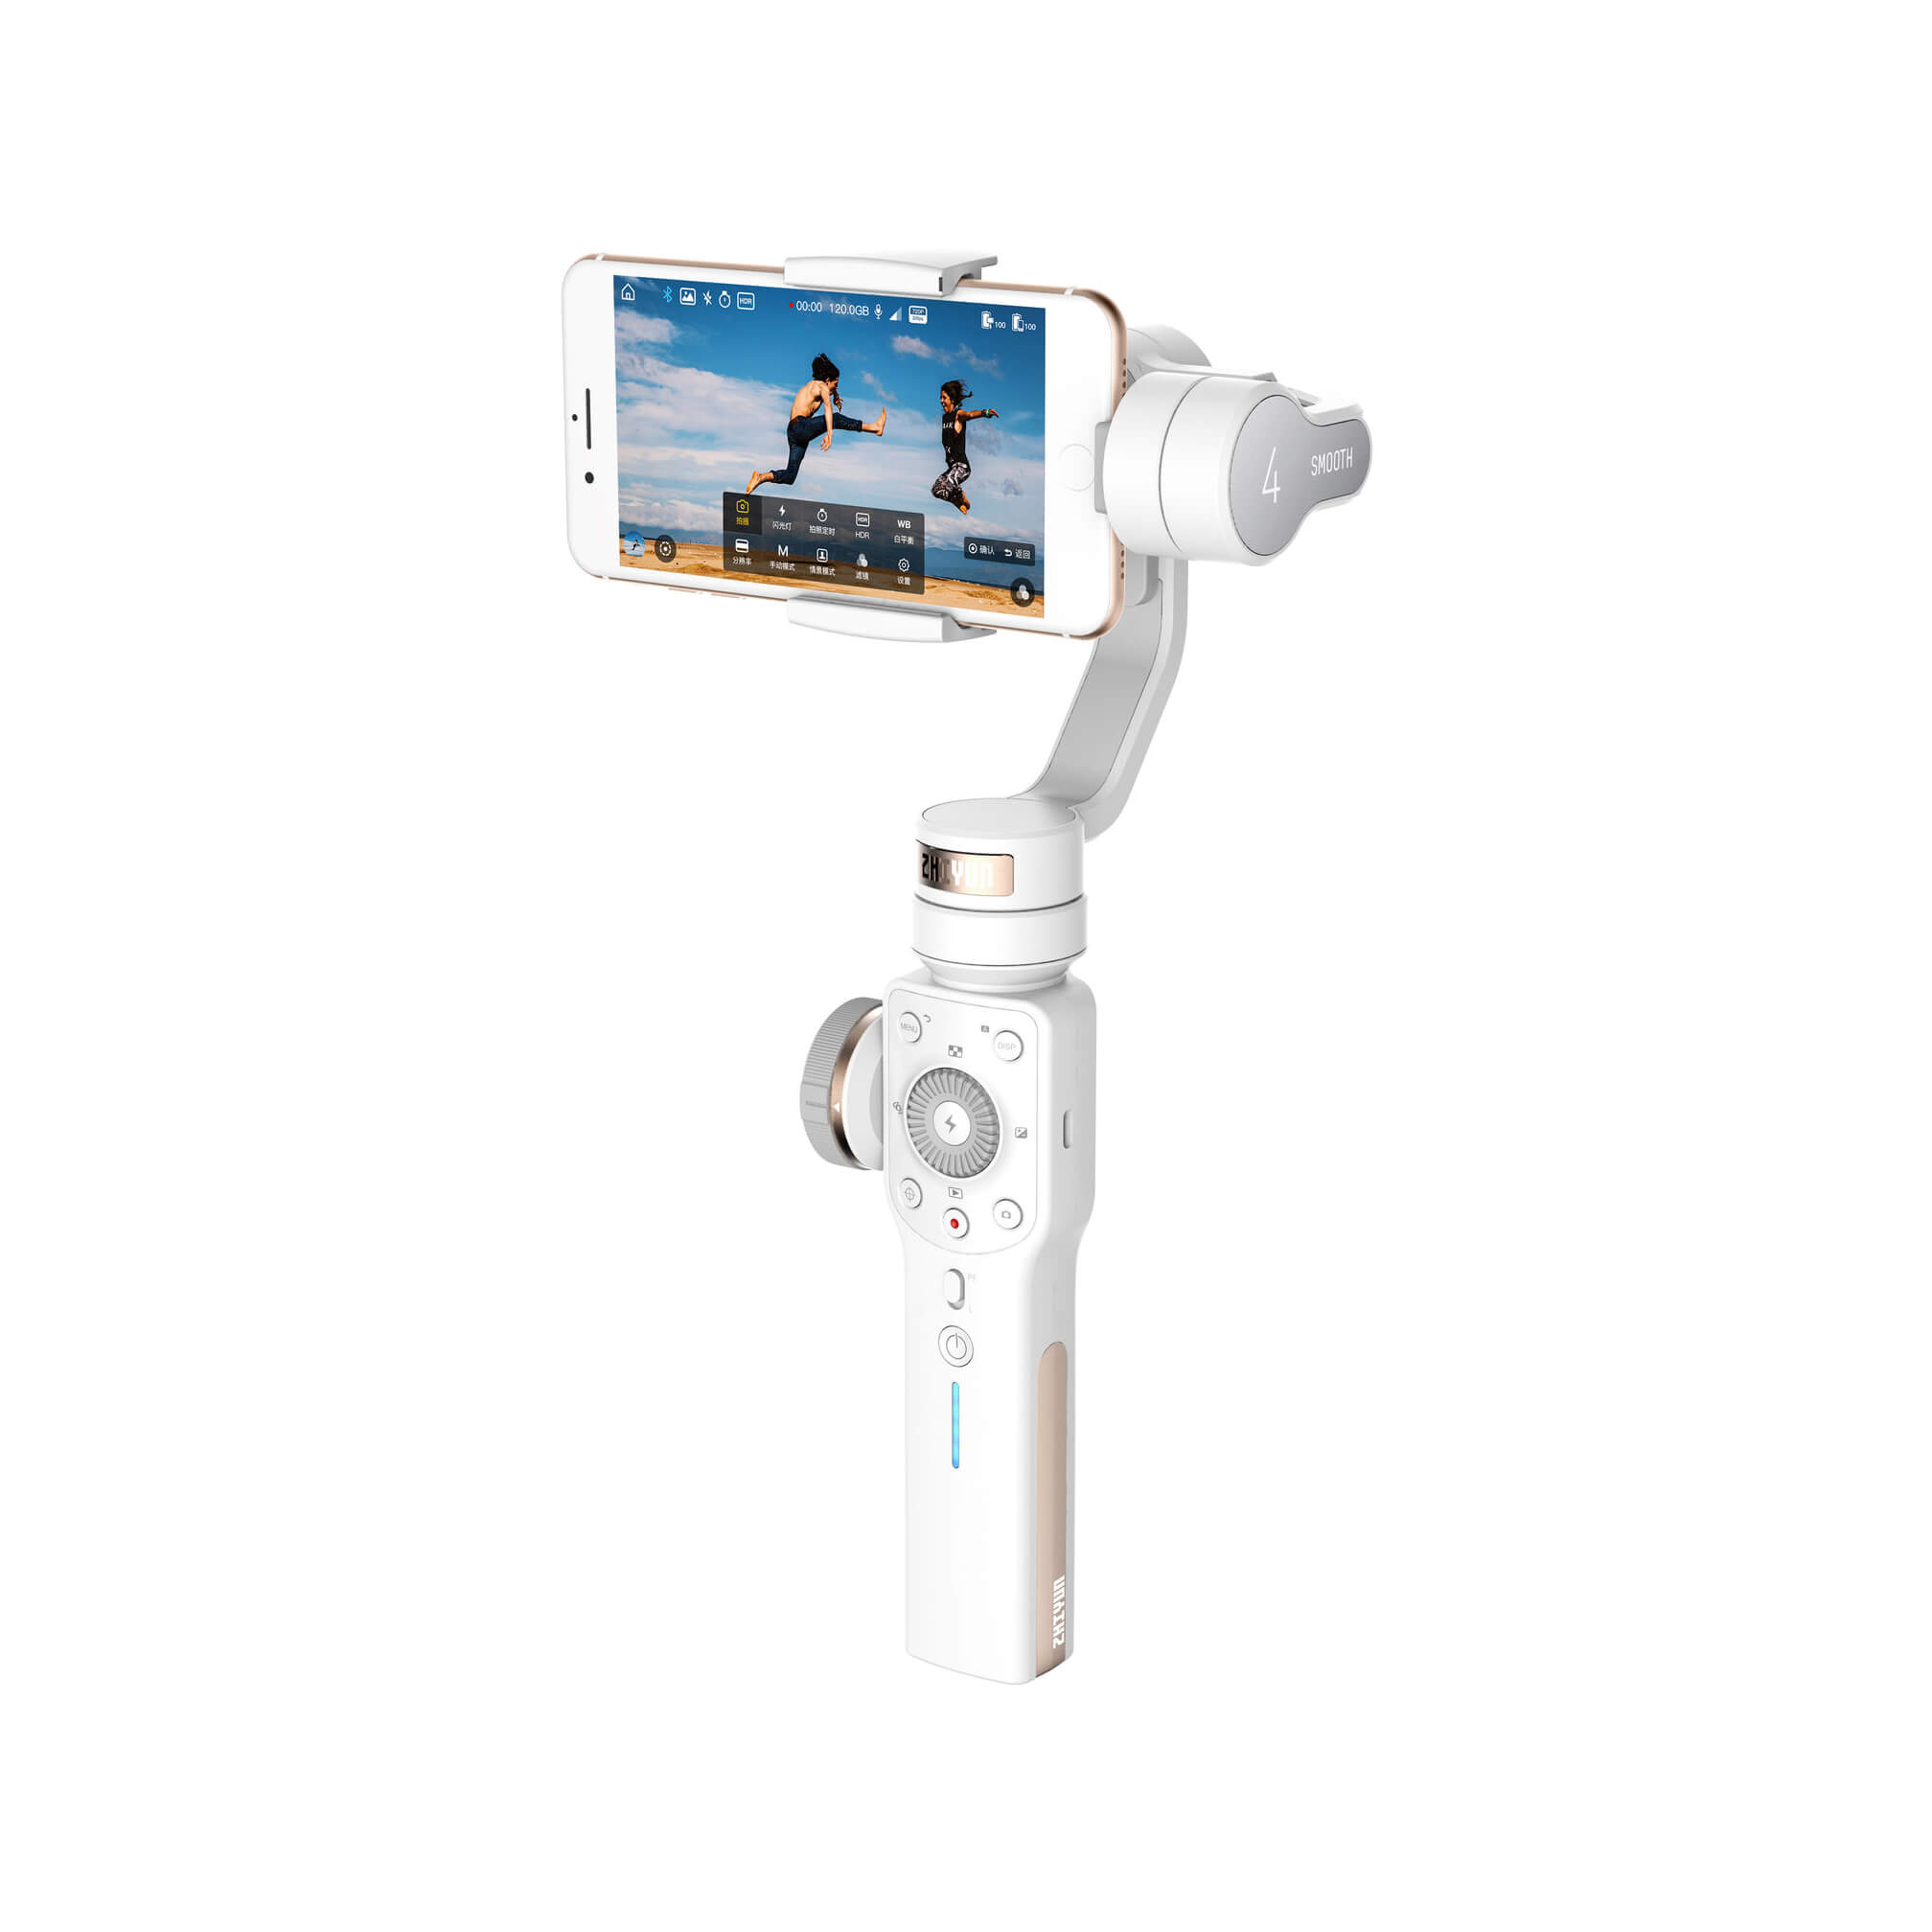 Zhiyun Smooth 4 3-Axis Handheld Gimbal Stabilizer White